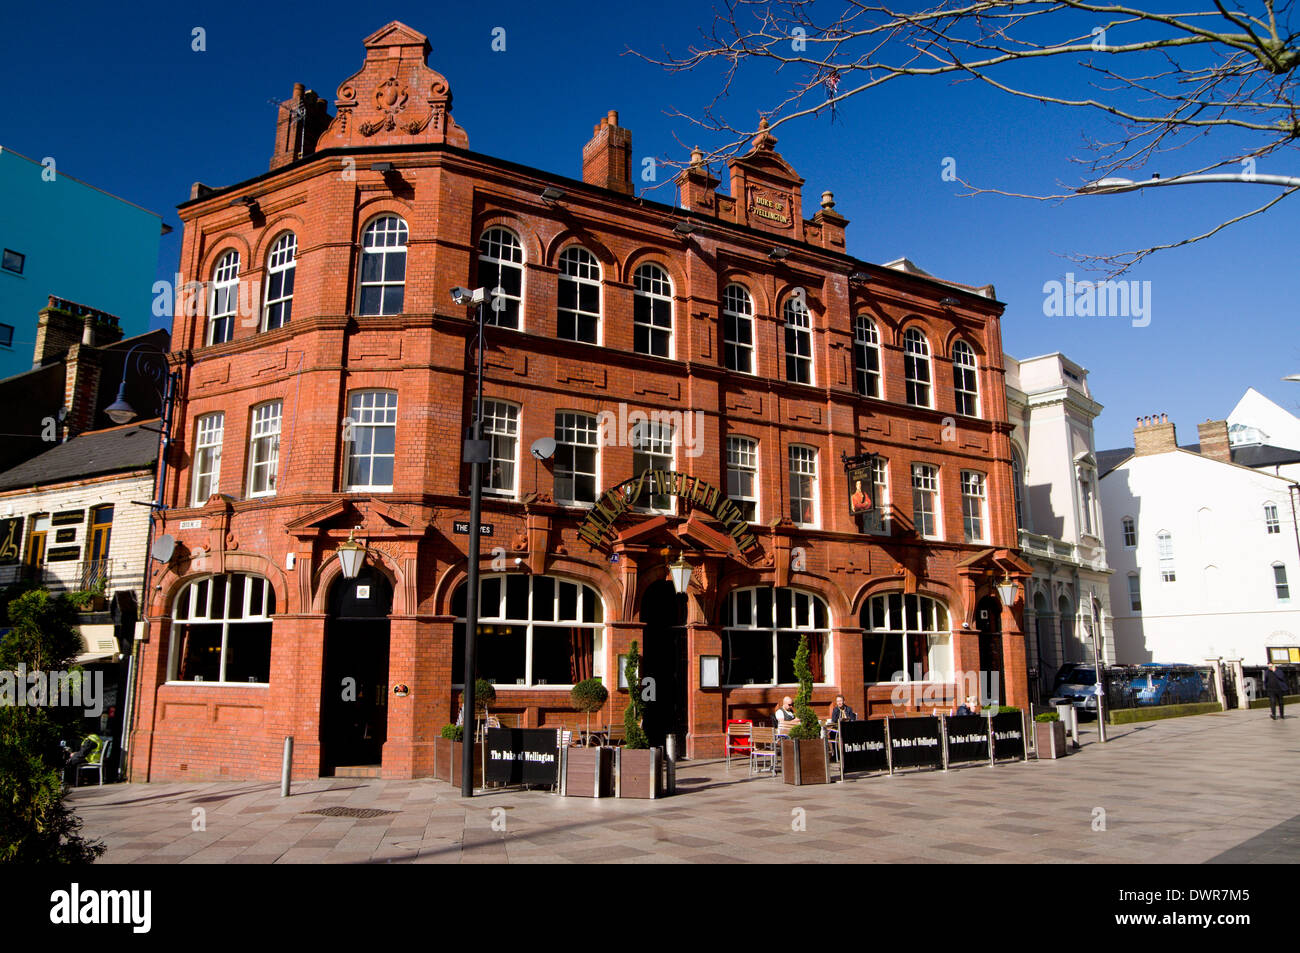 Duke of Wellington Public House, The Hayes, Cardiff, South Wales. - Stock Image